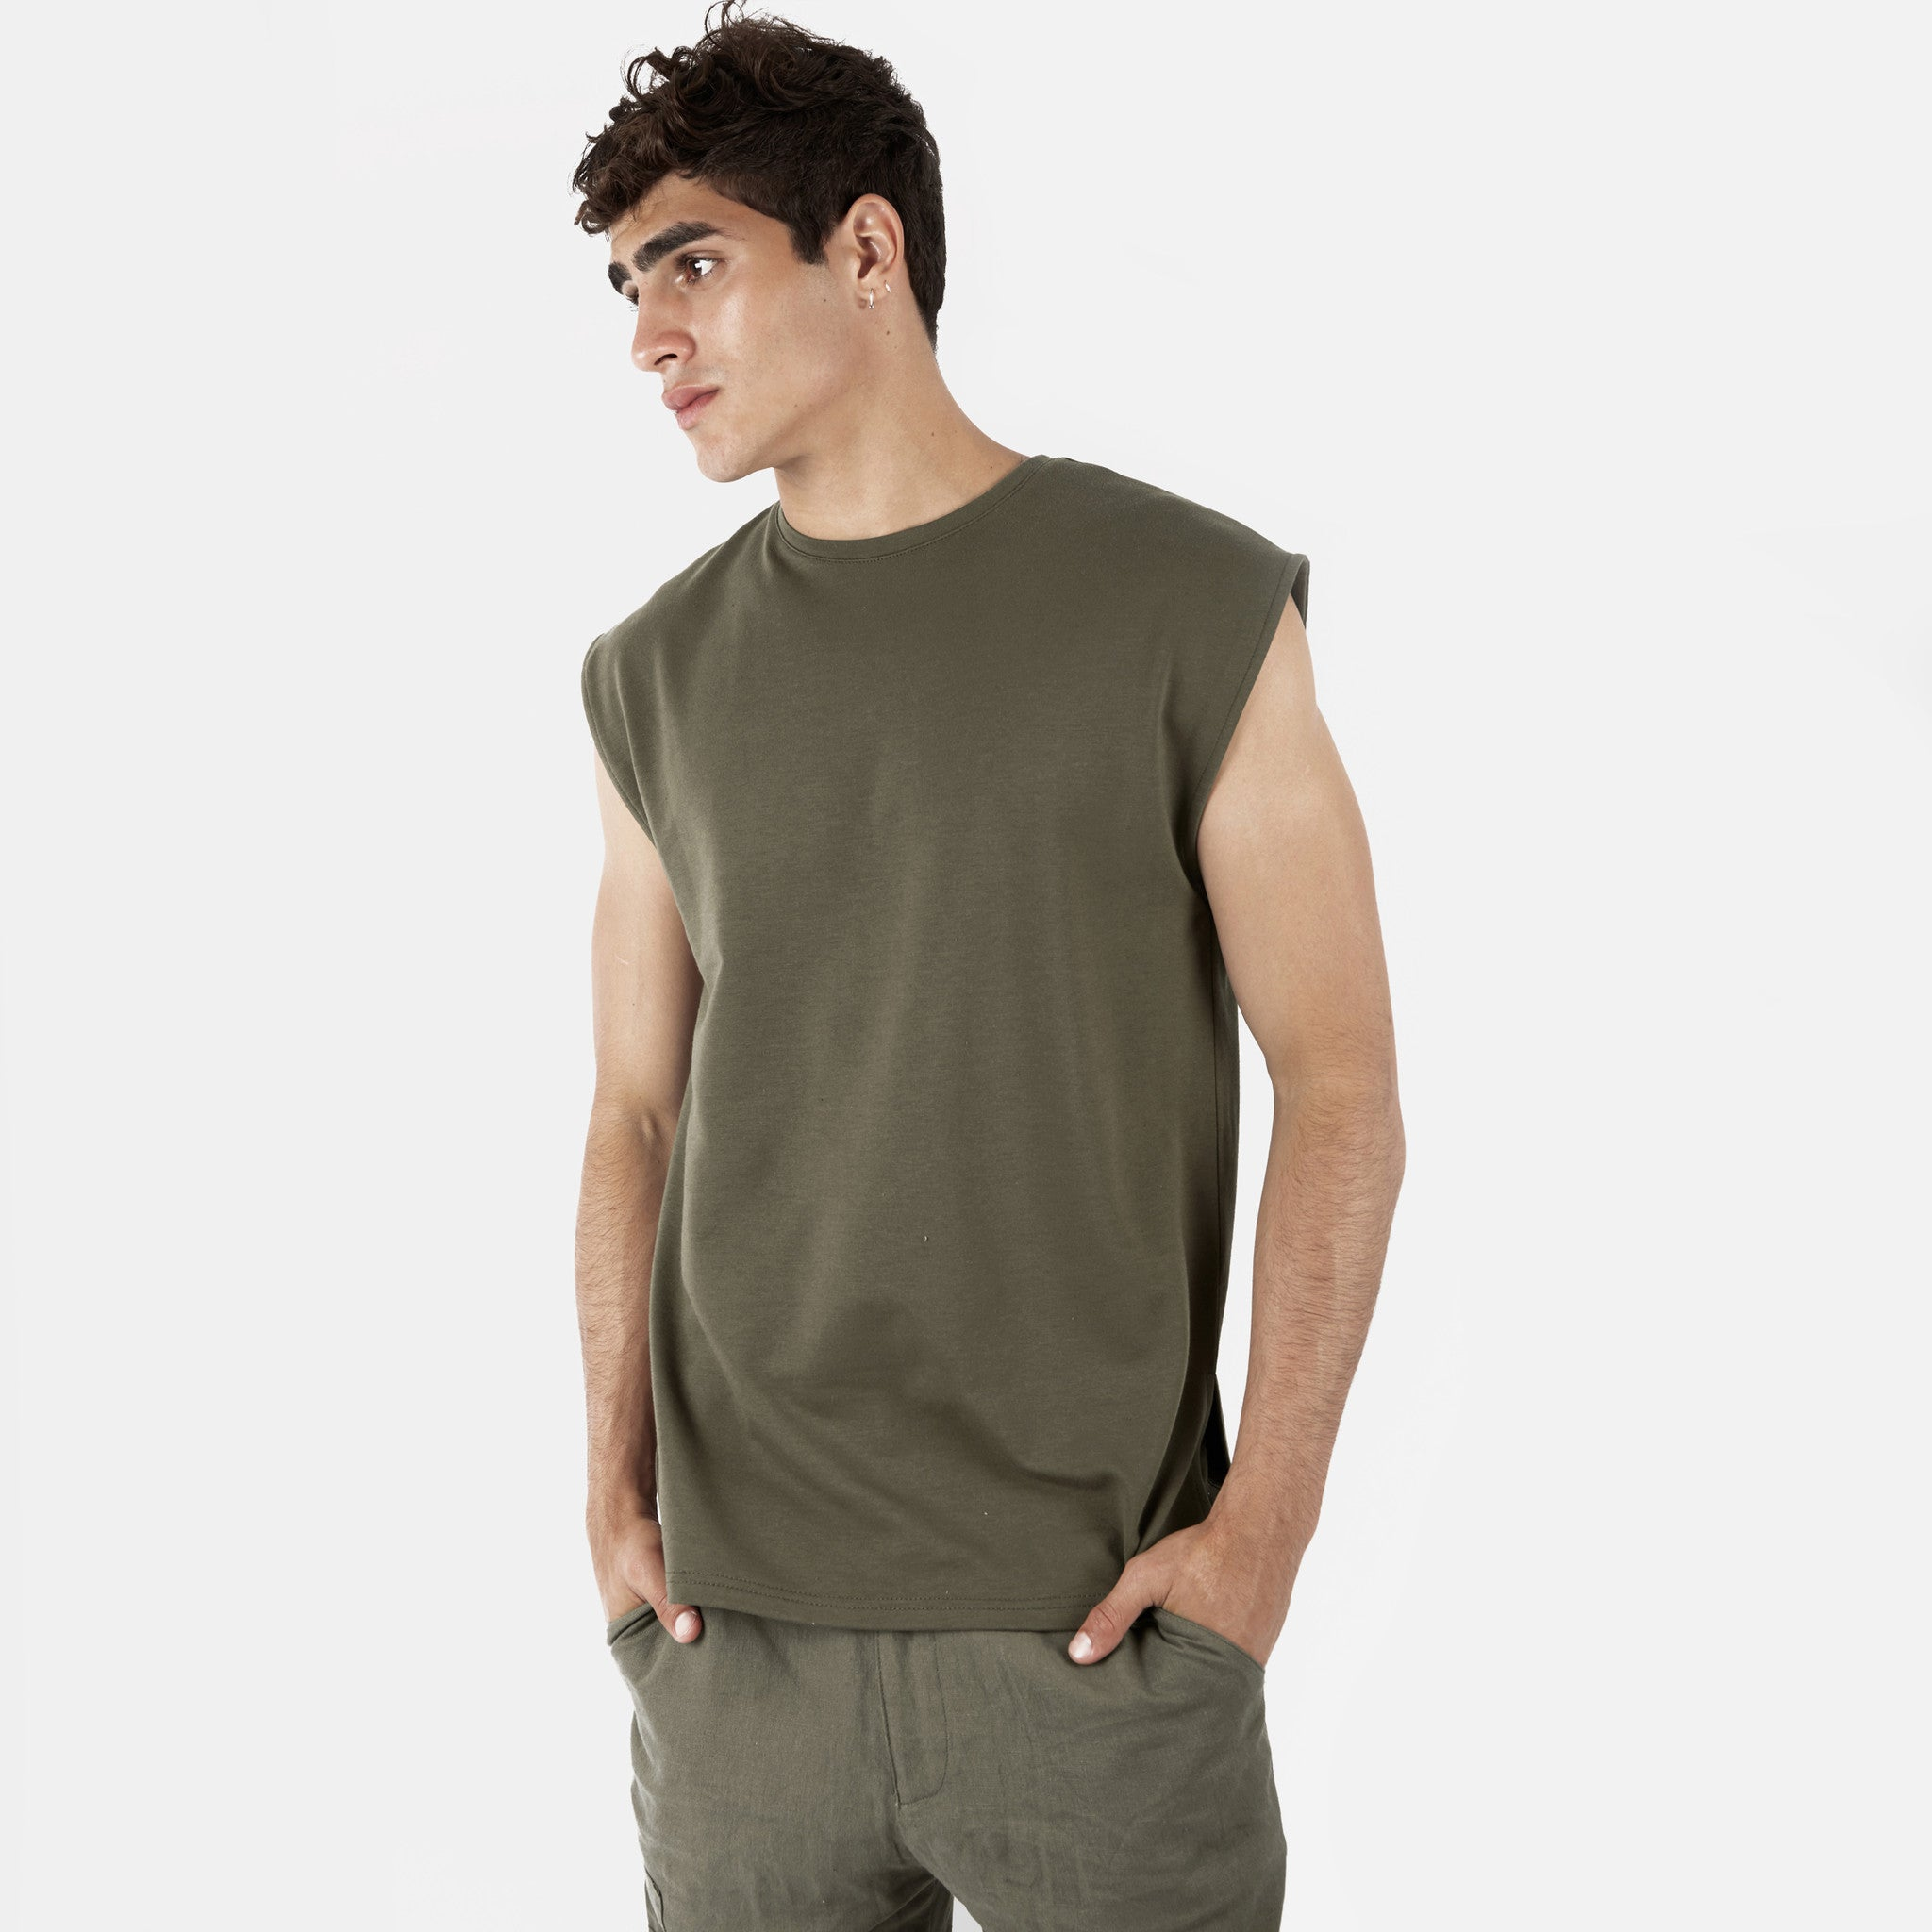 2 Pack Sleeveless Muscle Tee - Khaki/Beige - underated london - underatedco - 2